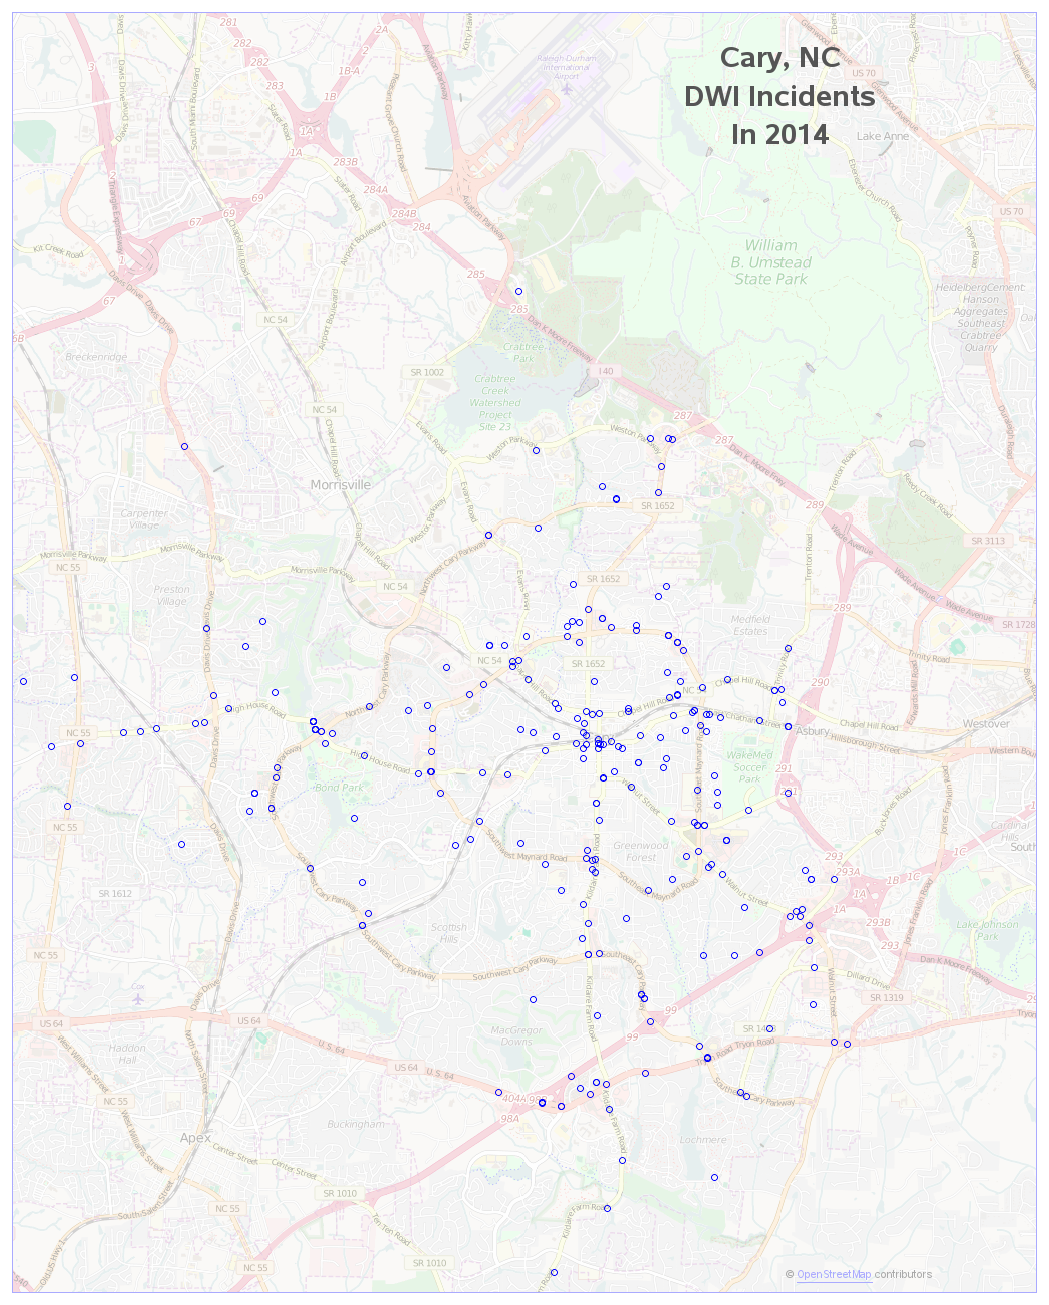 cary_crime_dwi_map_2014